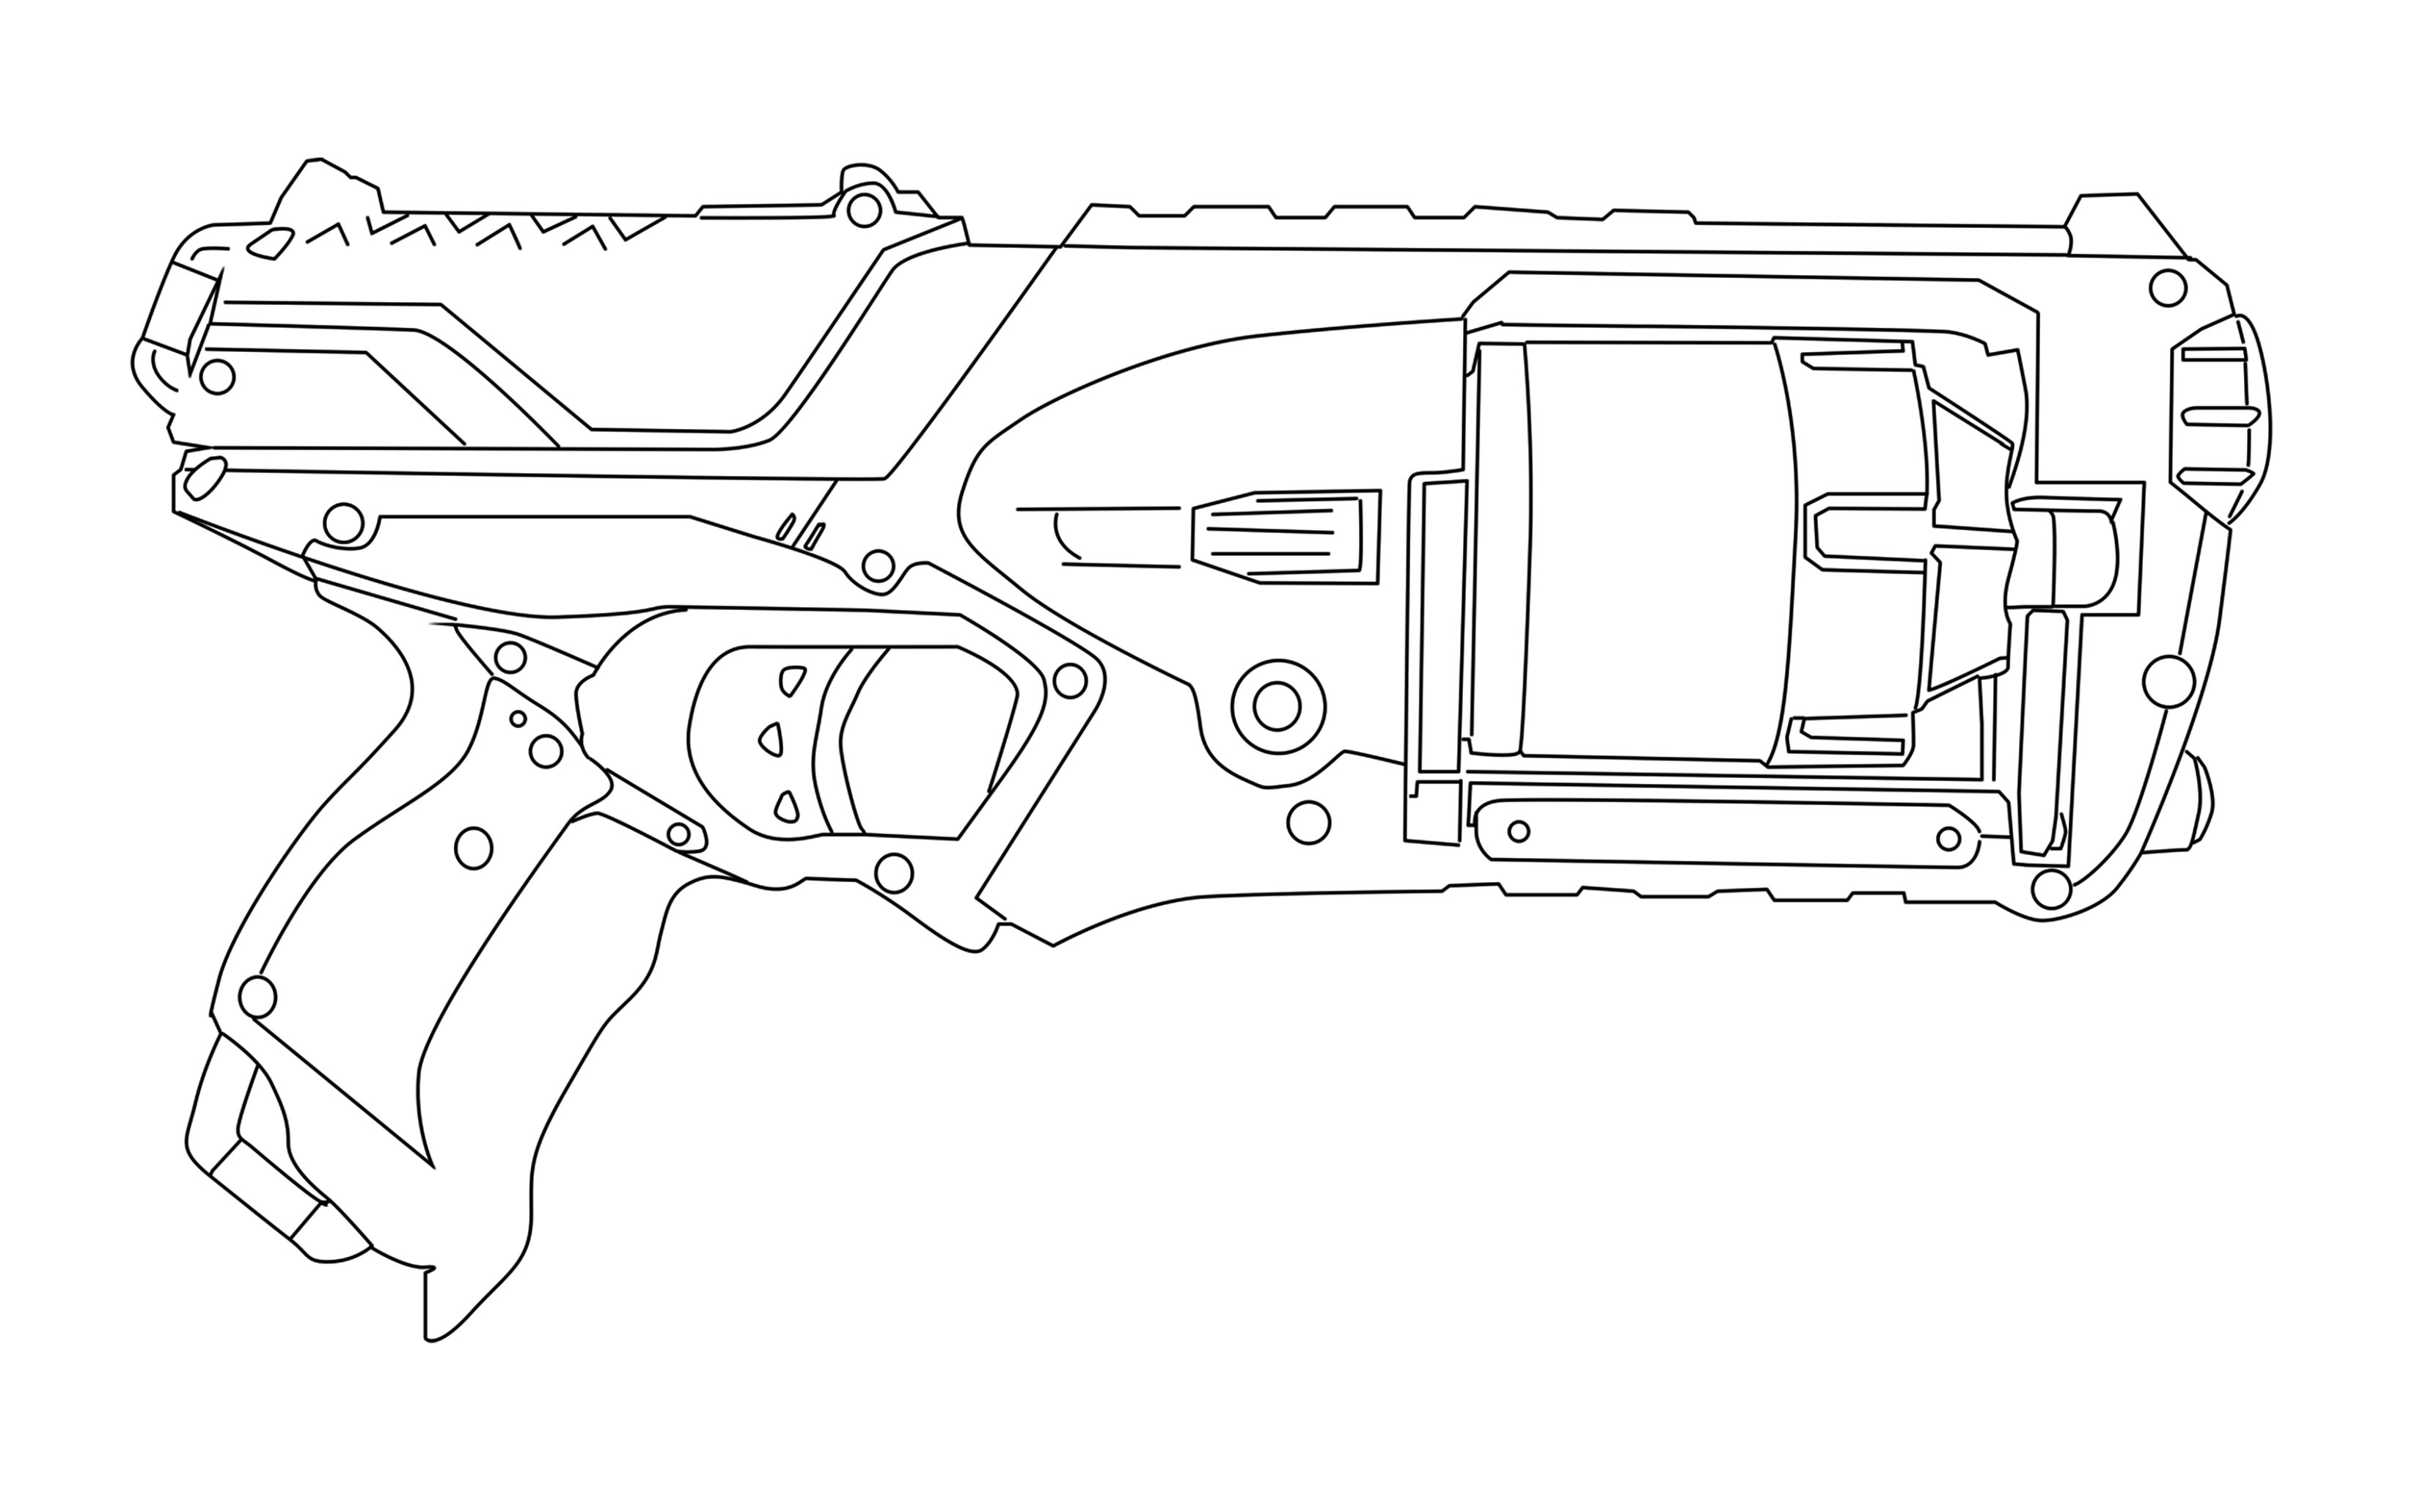 nerf gun coloring pages nerf guns coloring pages print for free wonder day nerf coloring gun pages